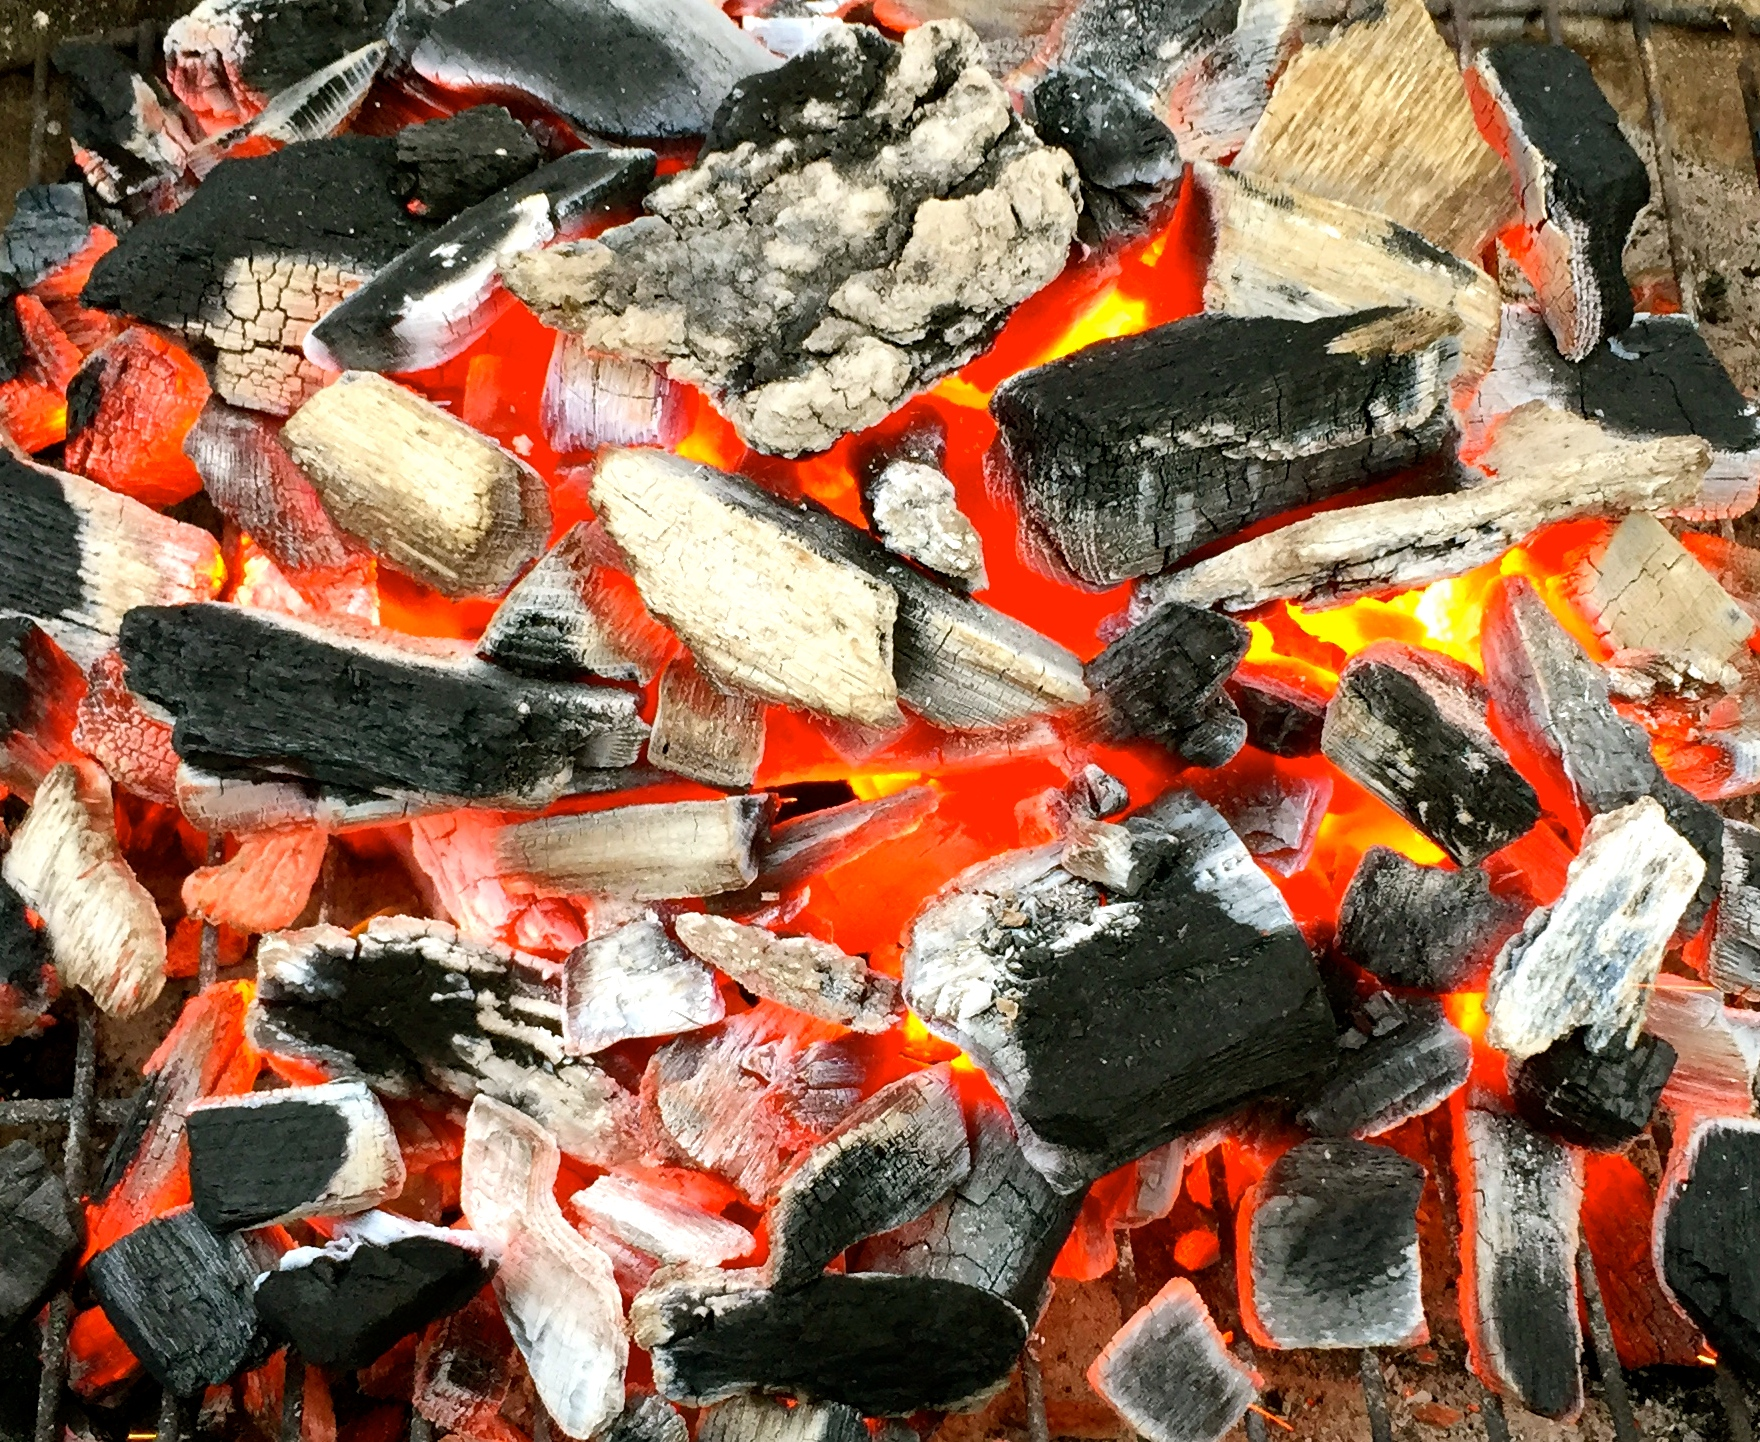 glowing embers of lump charcoal